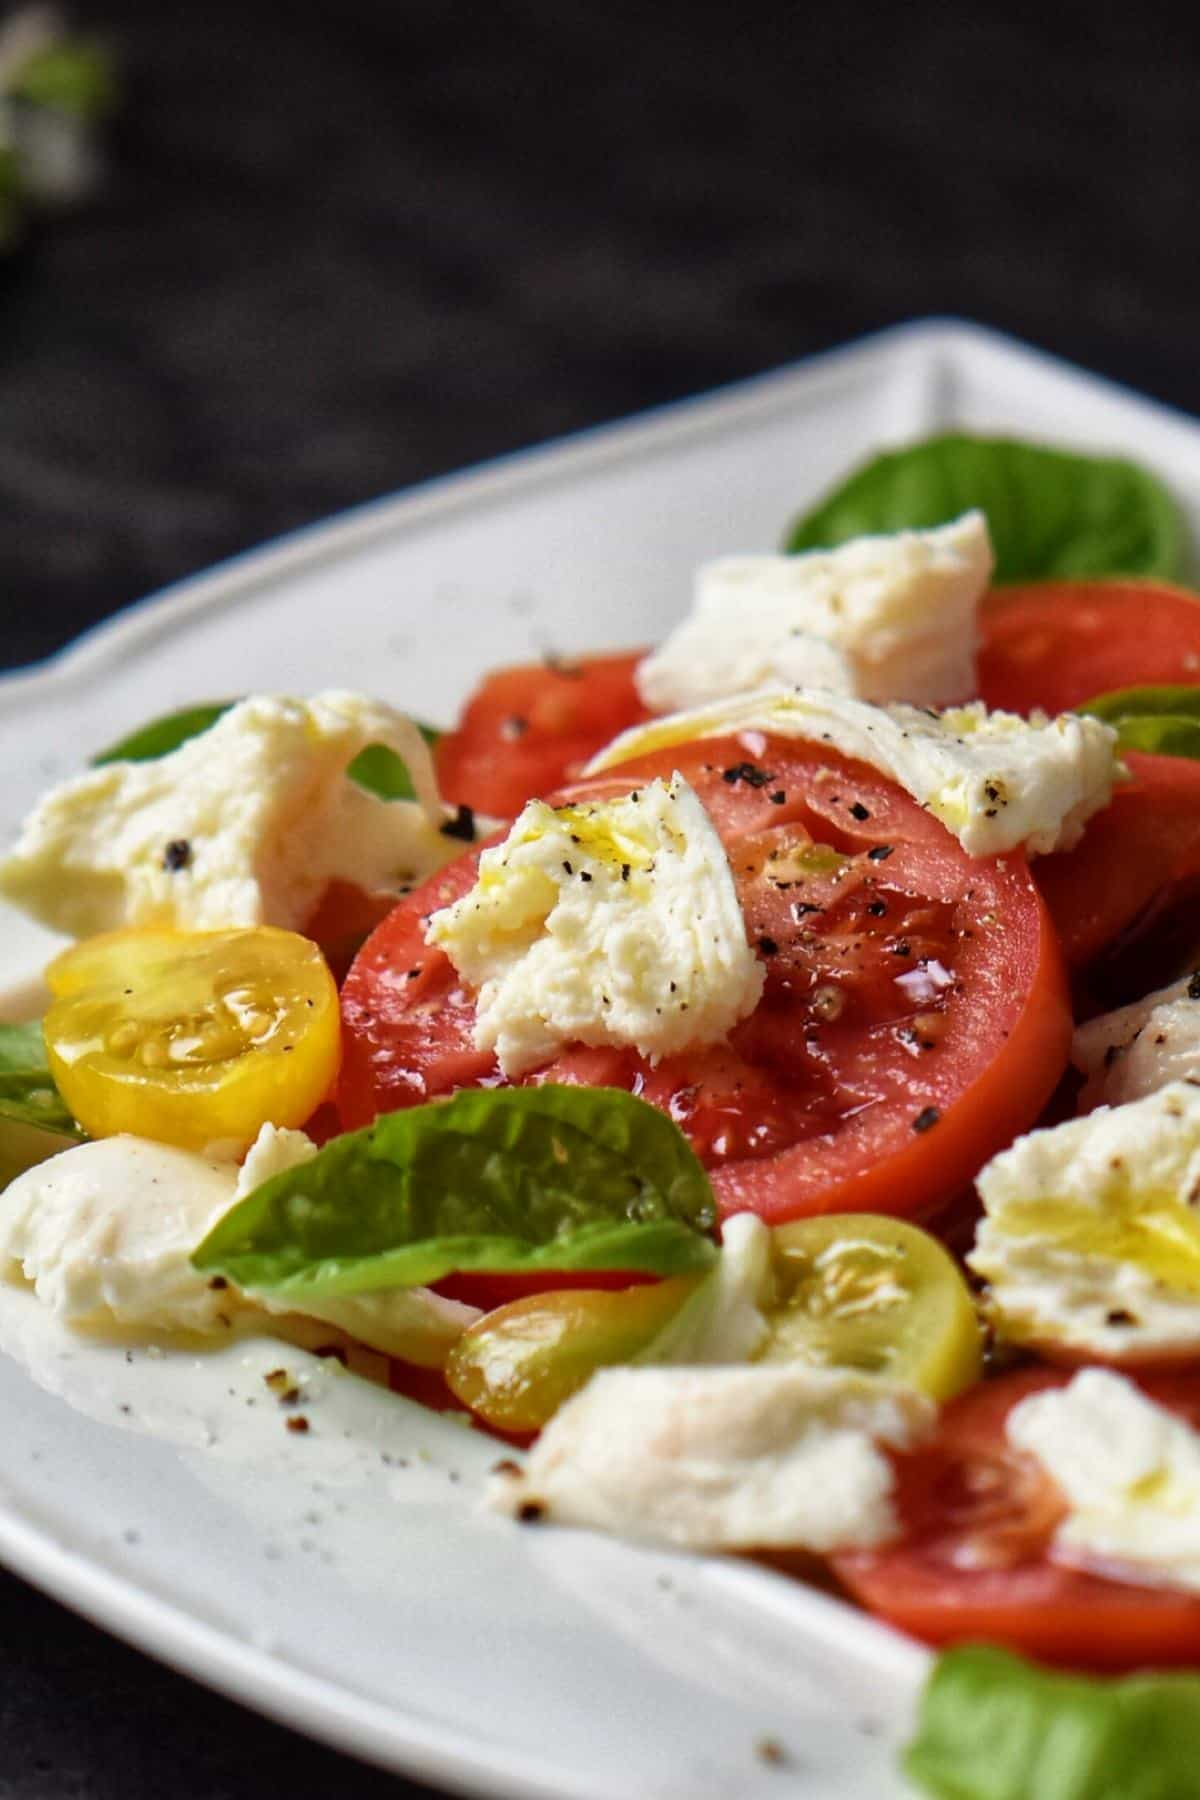 Fresh Mozzarella cheese, tomato slices and basil leaves on a white serving platter.